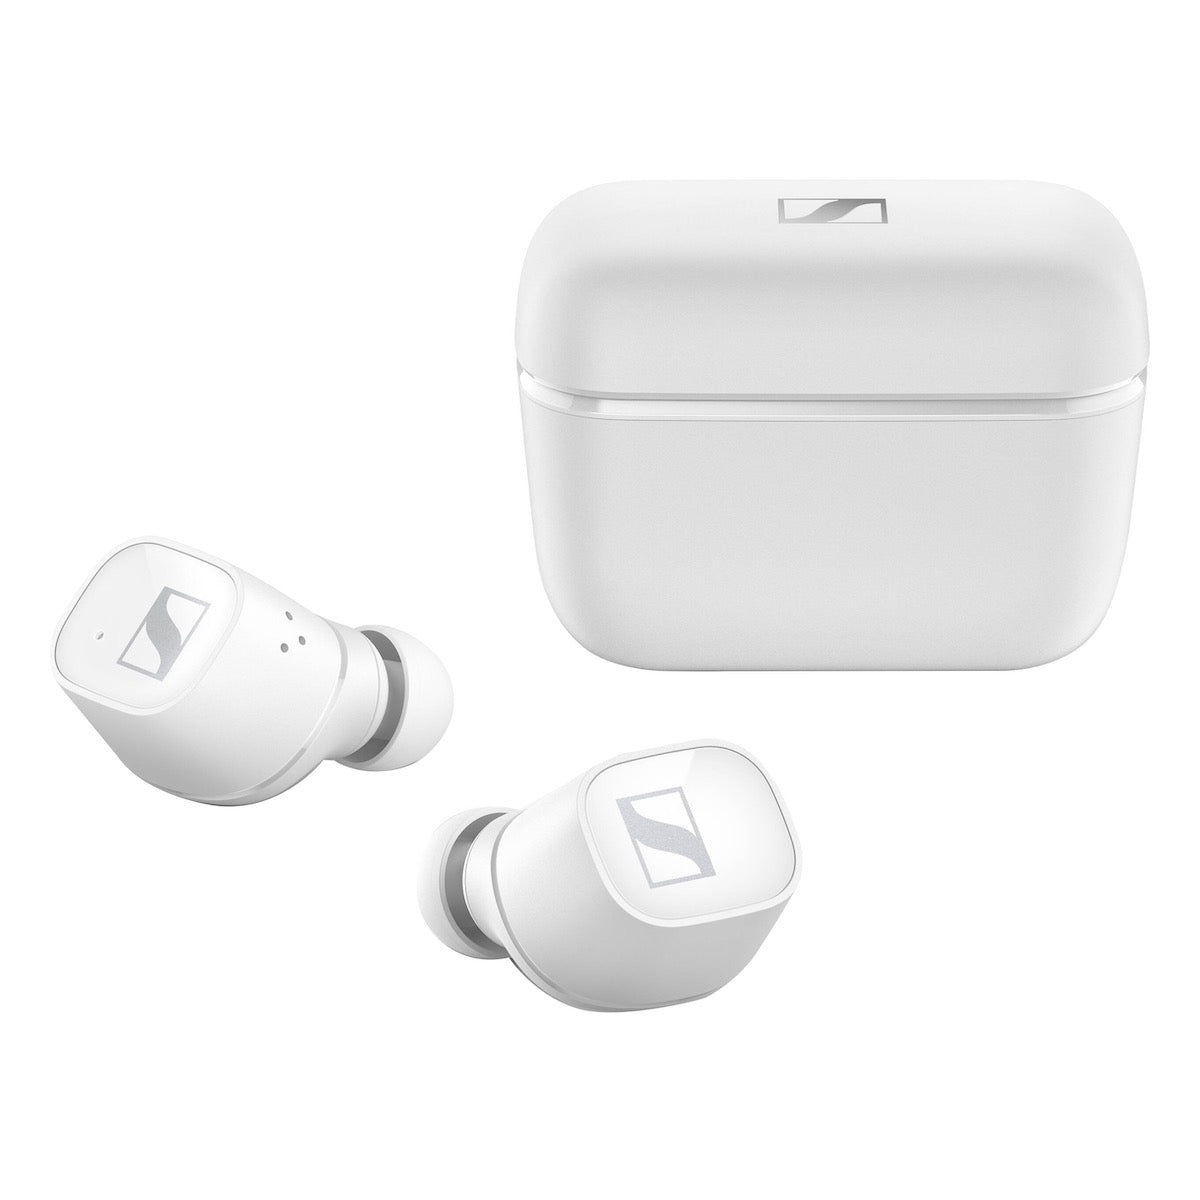 Sennheiser CX 400BT True Wireless - In-Ear Earbud, Sennheiser, True Wireless Earphones - AVStore.in